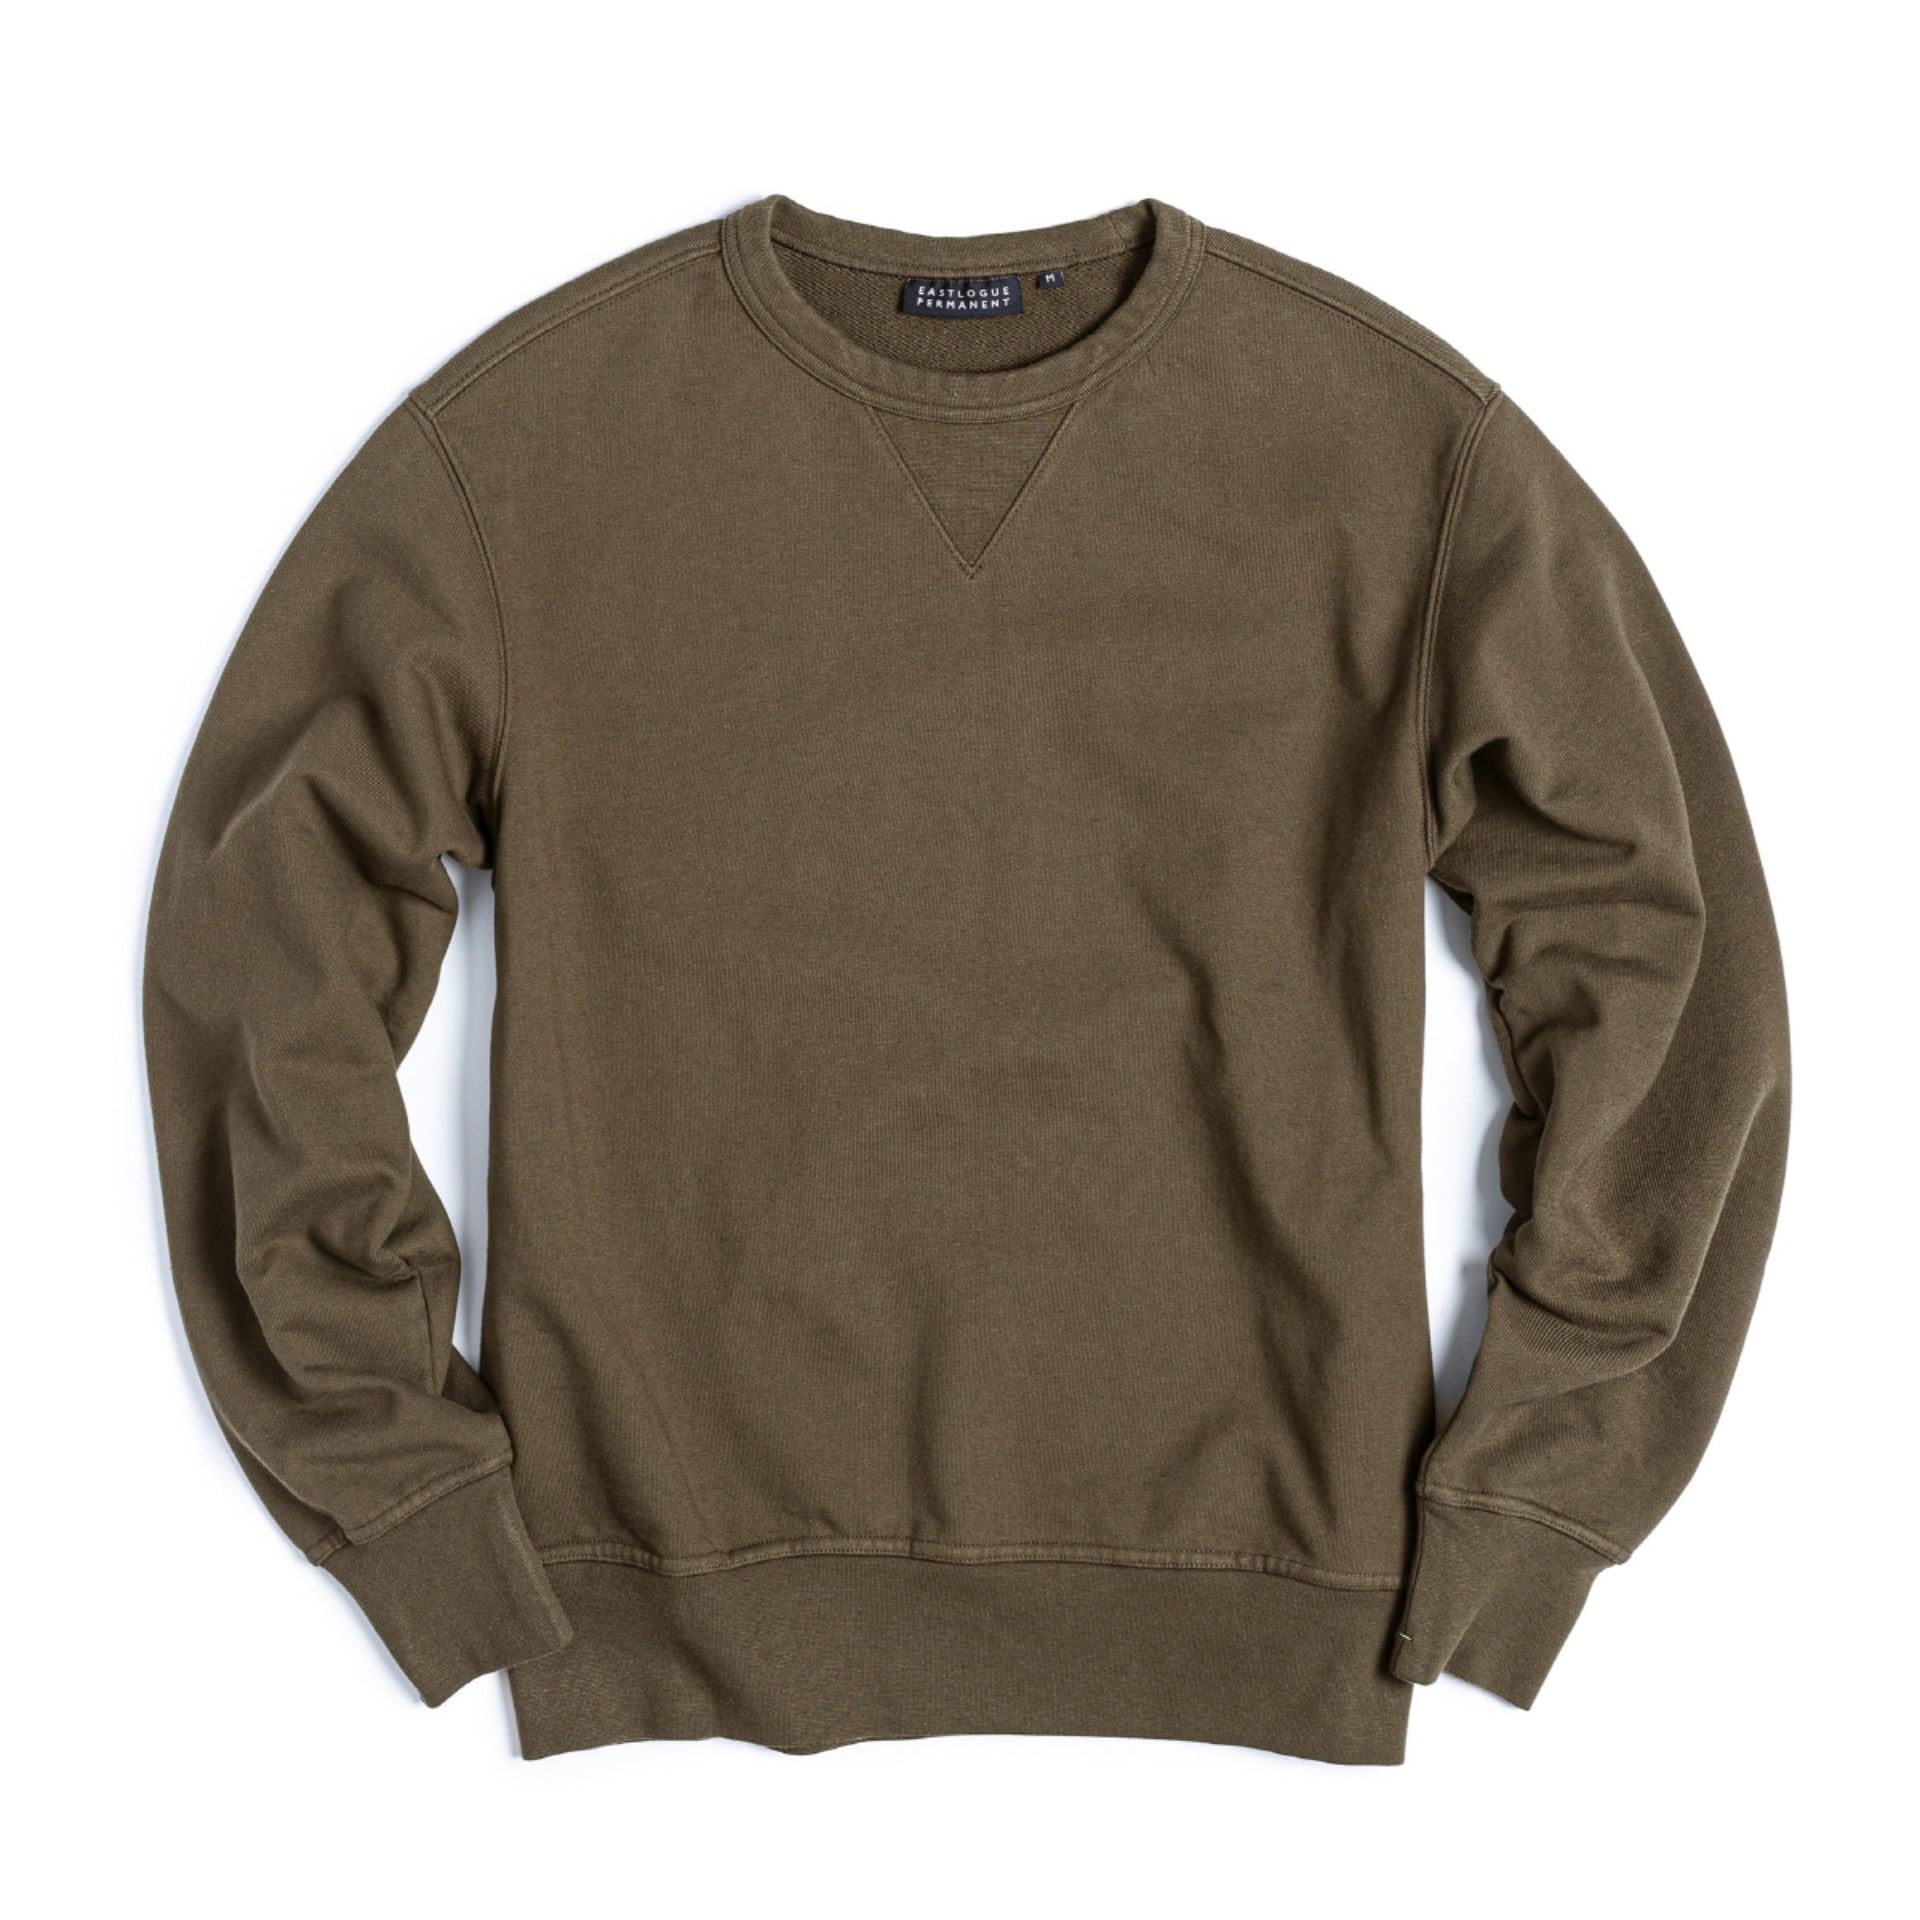 SWEAT SHIRT (Olive)